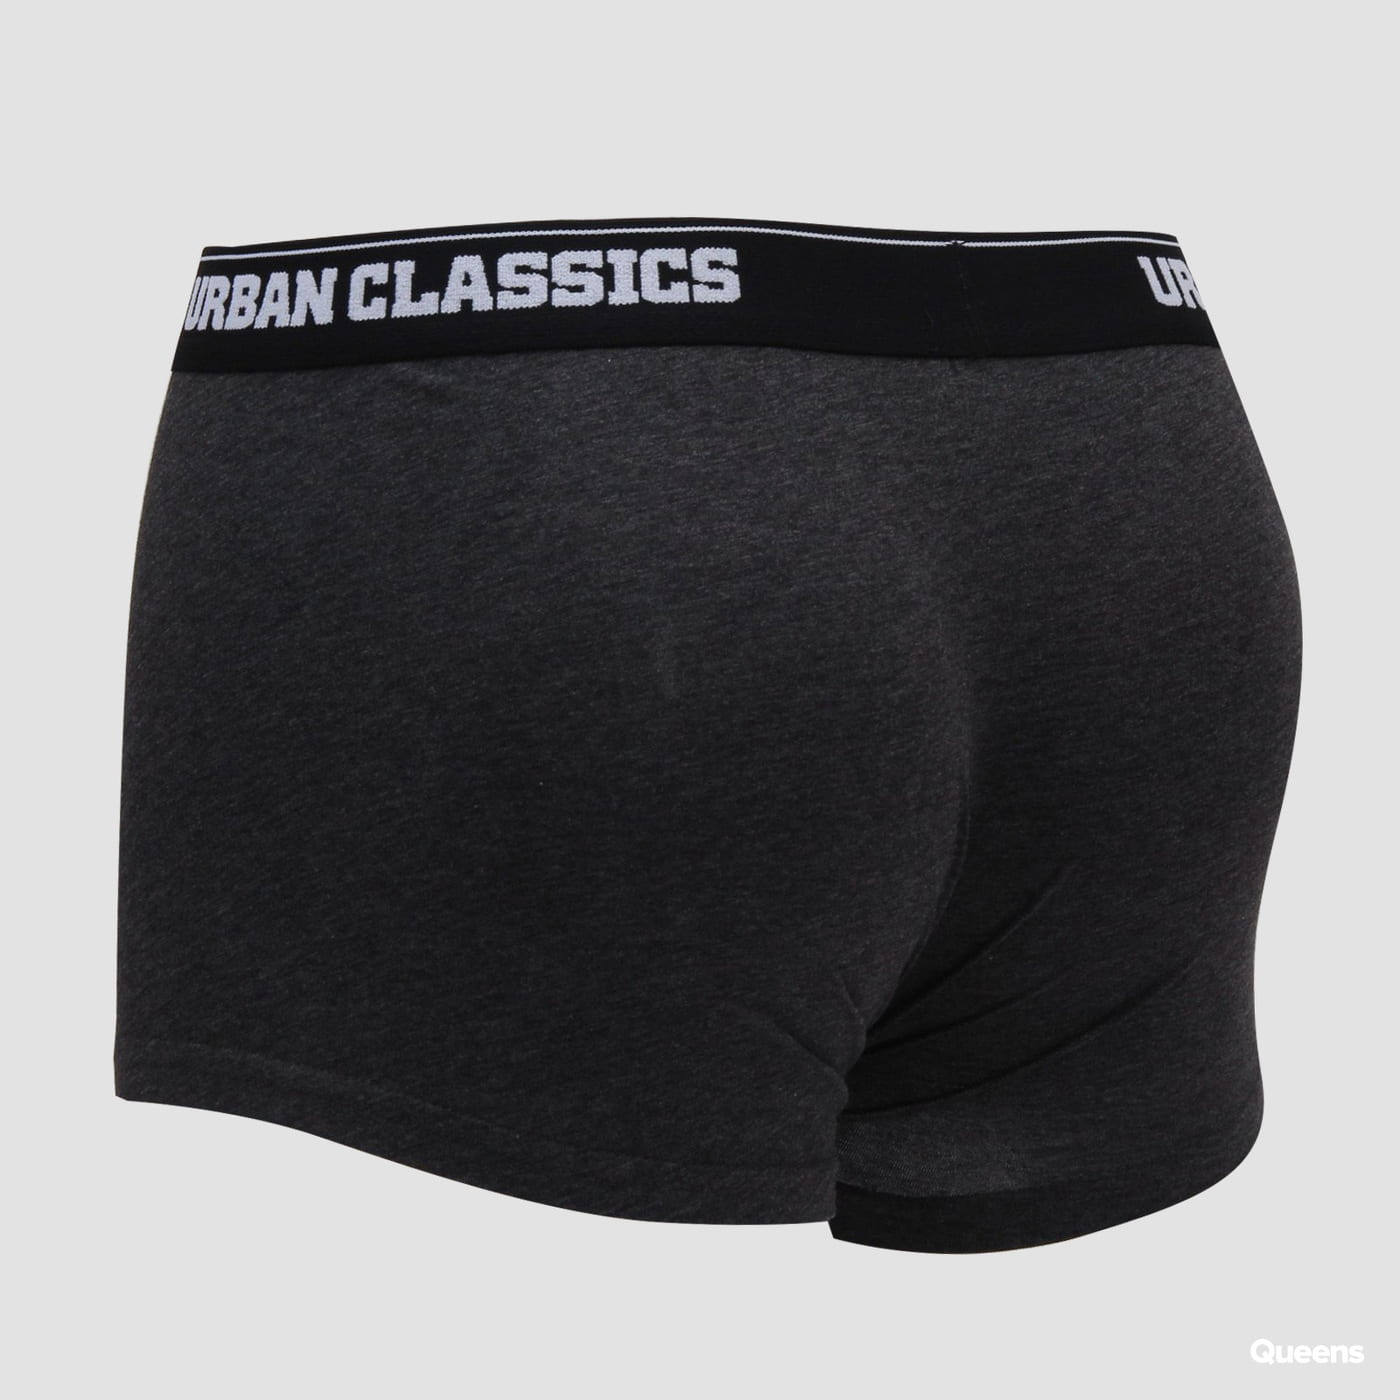 Urban Classics Mens Boxer Shorts Double Pack tmavošedé